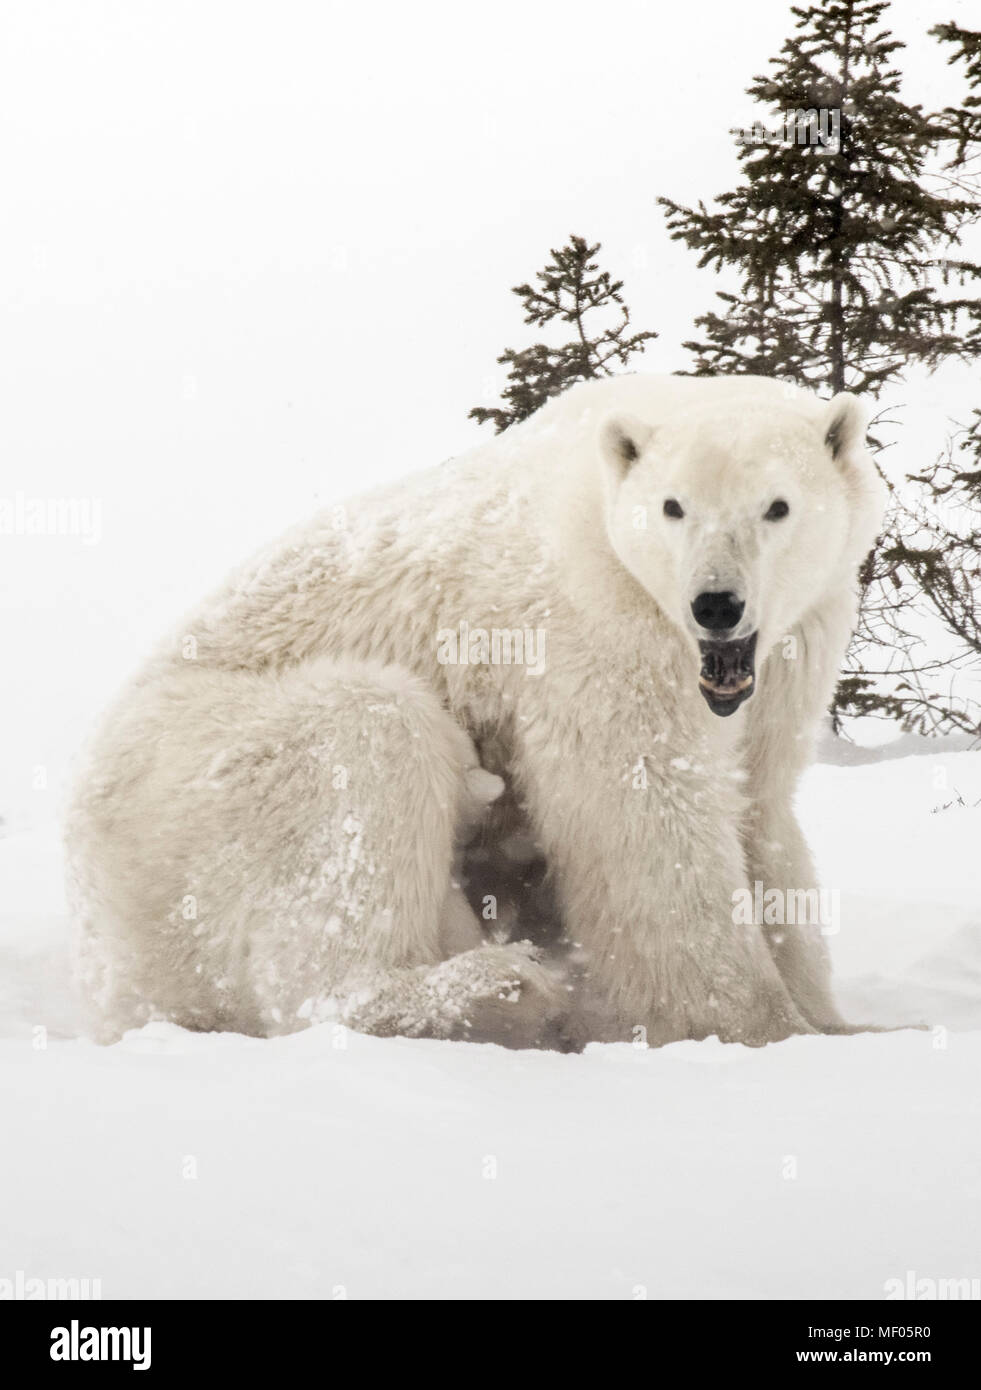 Cubs hide between Mother's legs to keep warm and to nurse.  Polar Bear mothers are very protective and nurturing with their young cubs. - Stock Image